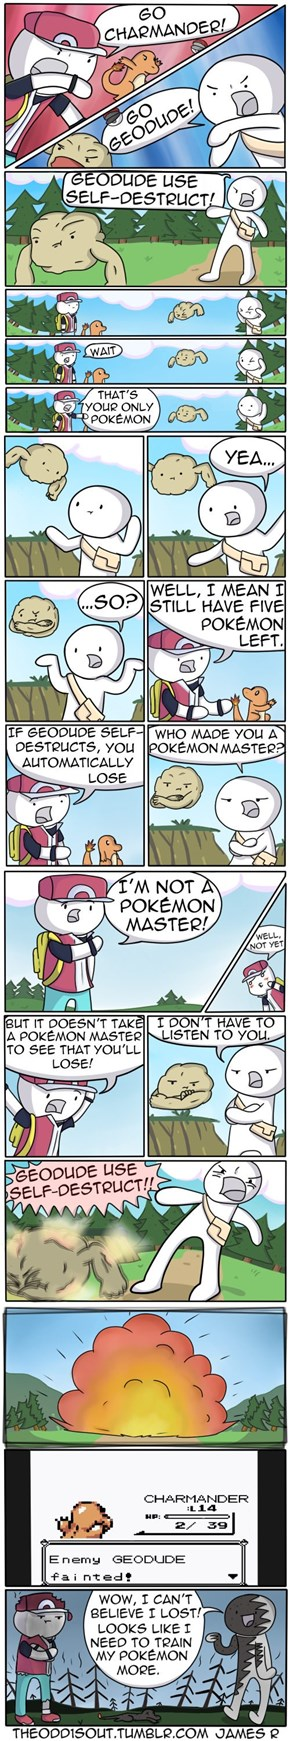 The Pinnacle of Pokémon Logic Comics Right Here!